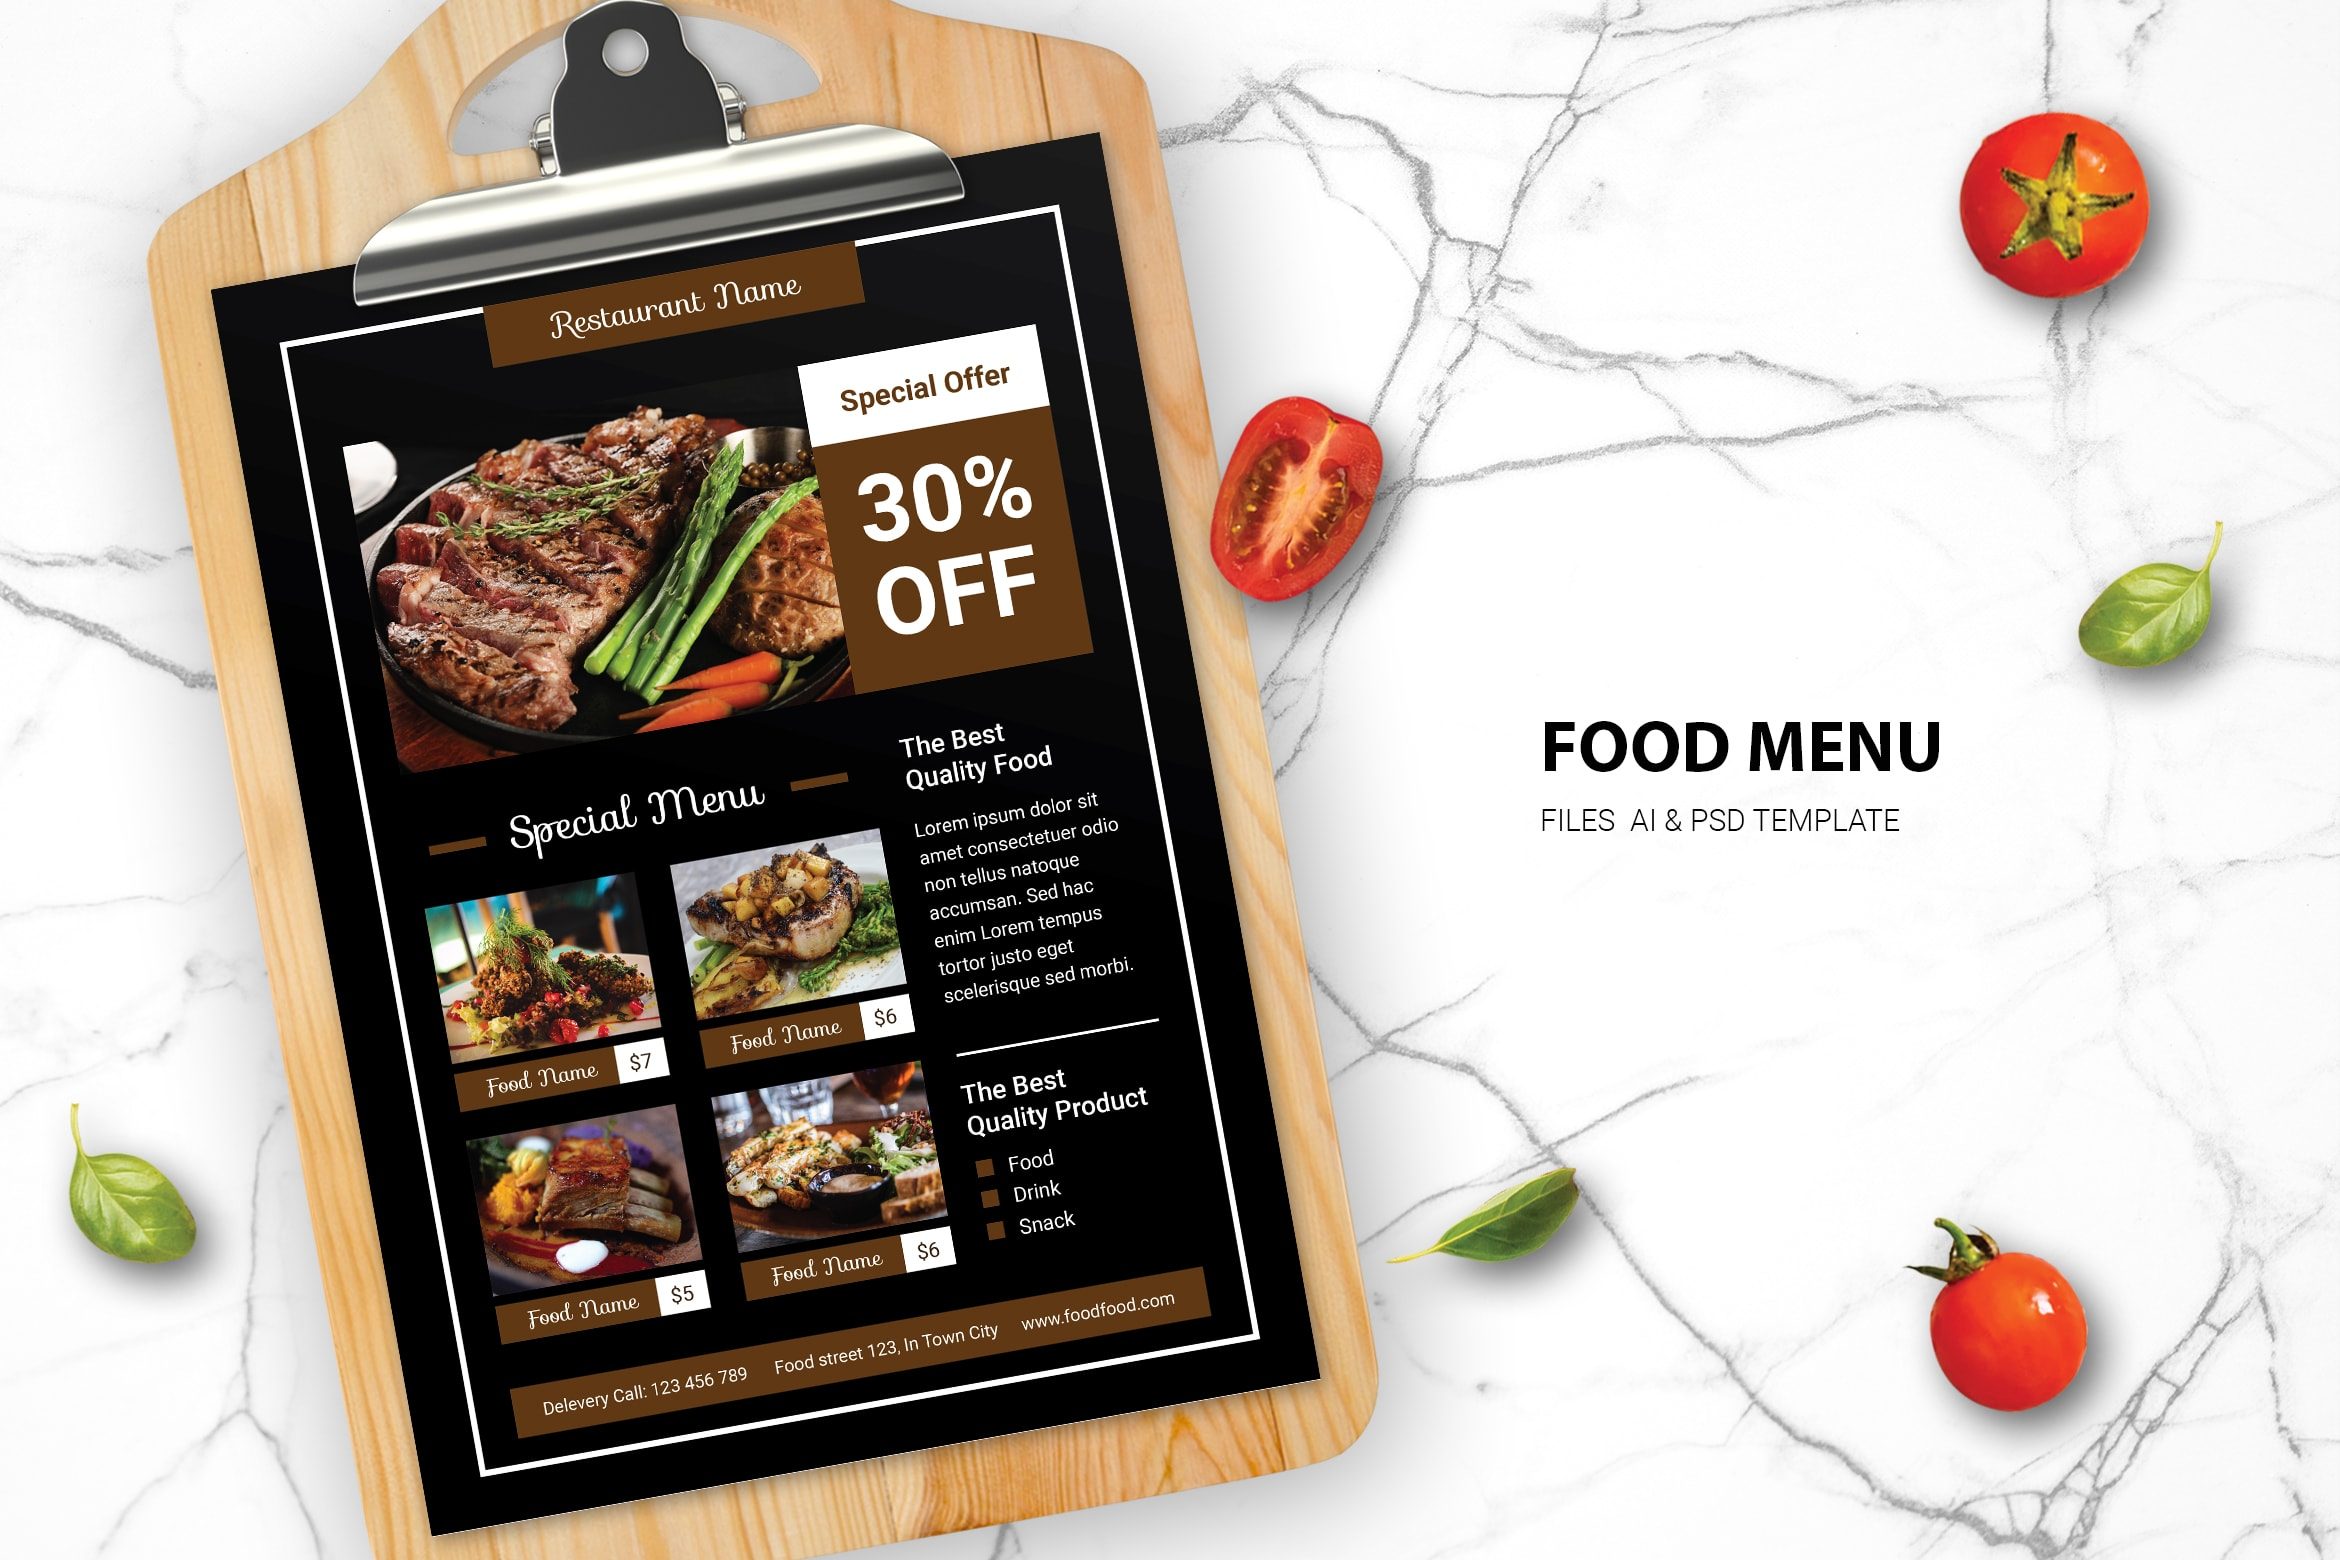 Food Menu - Steak Restaurant